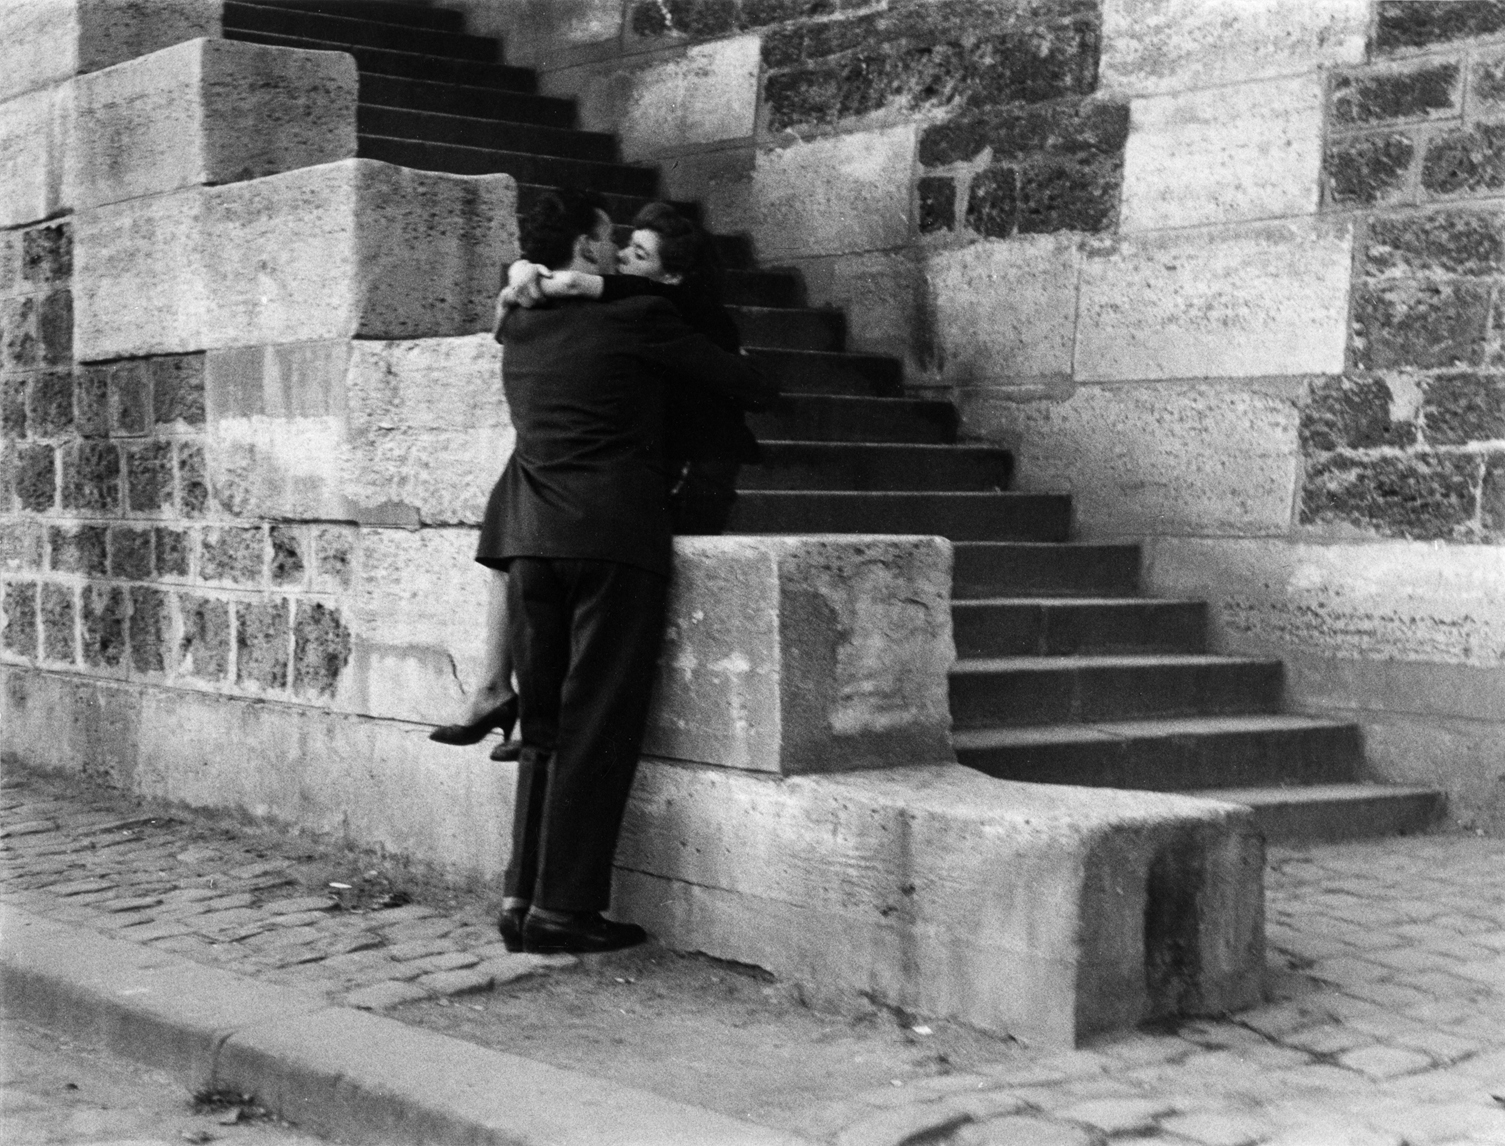 Courtesy of Sabine Weiss